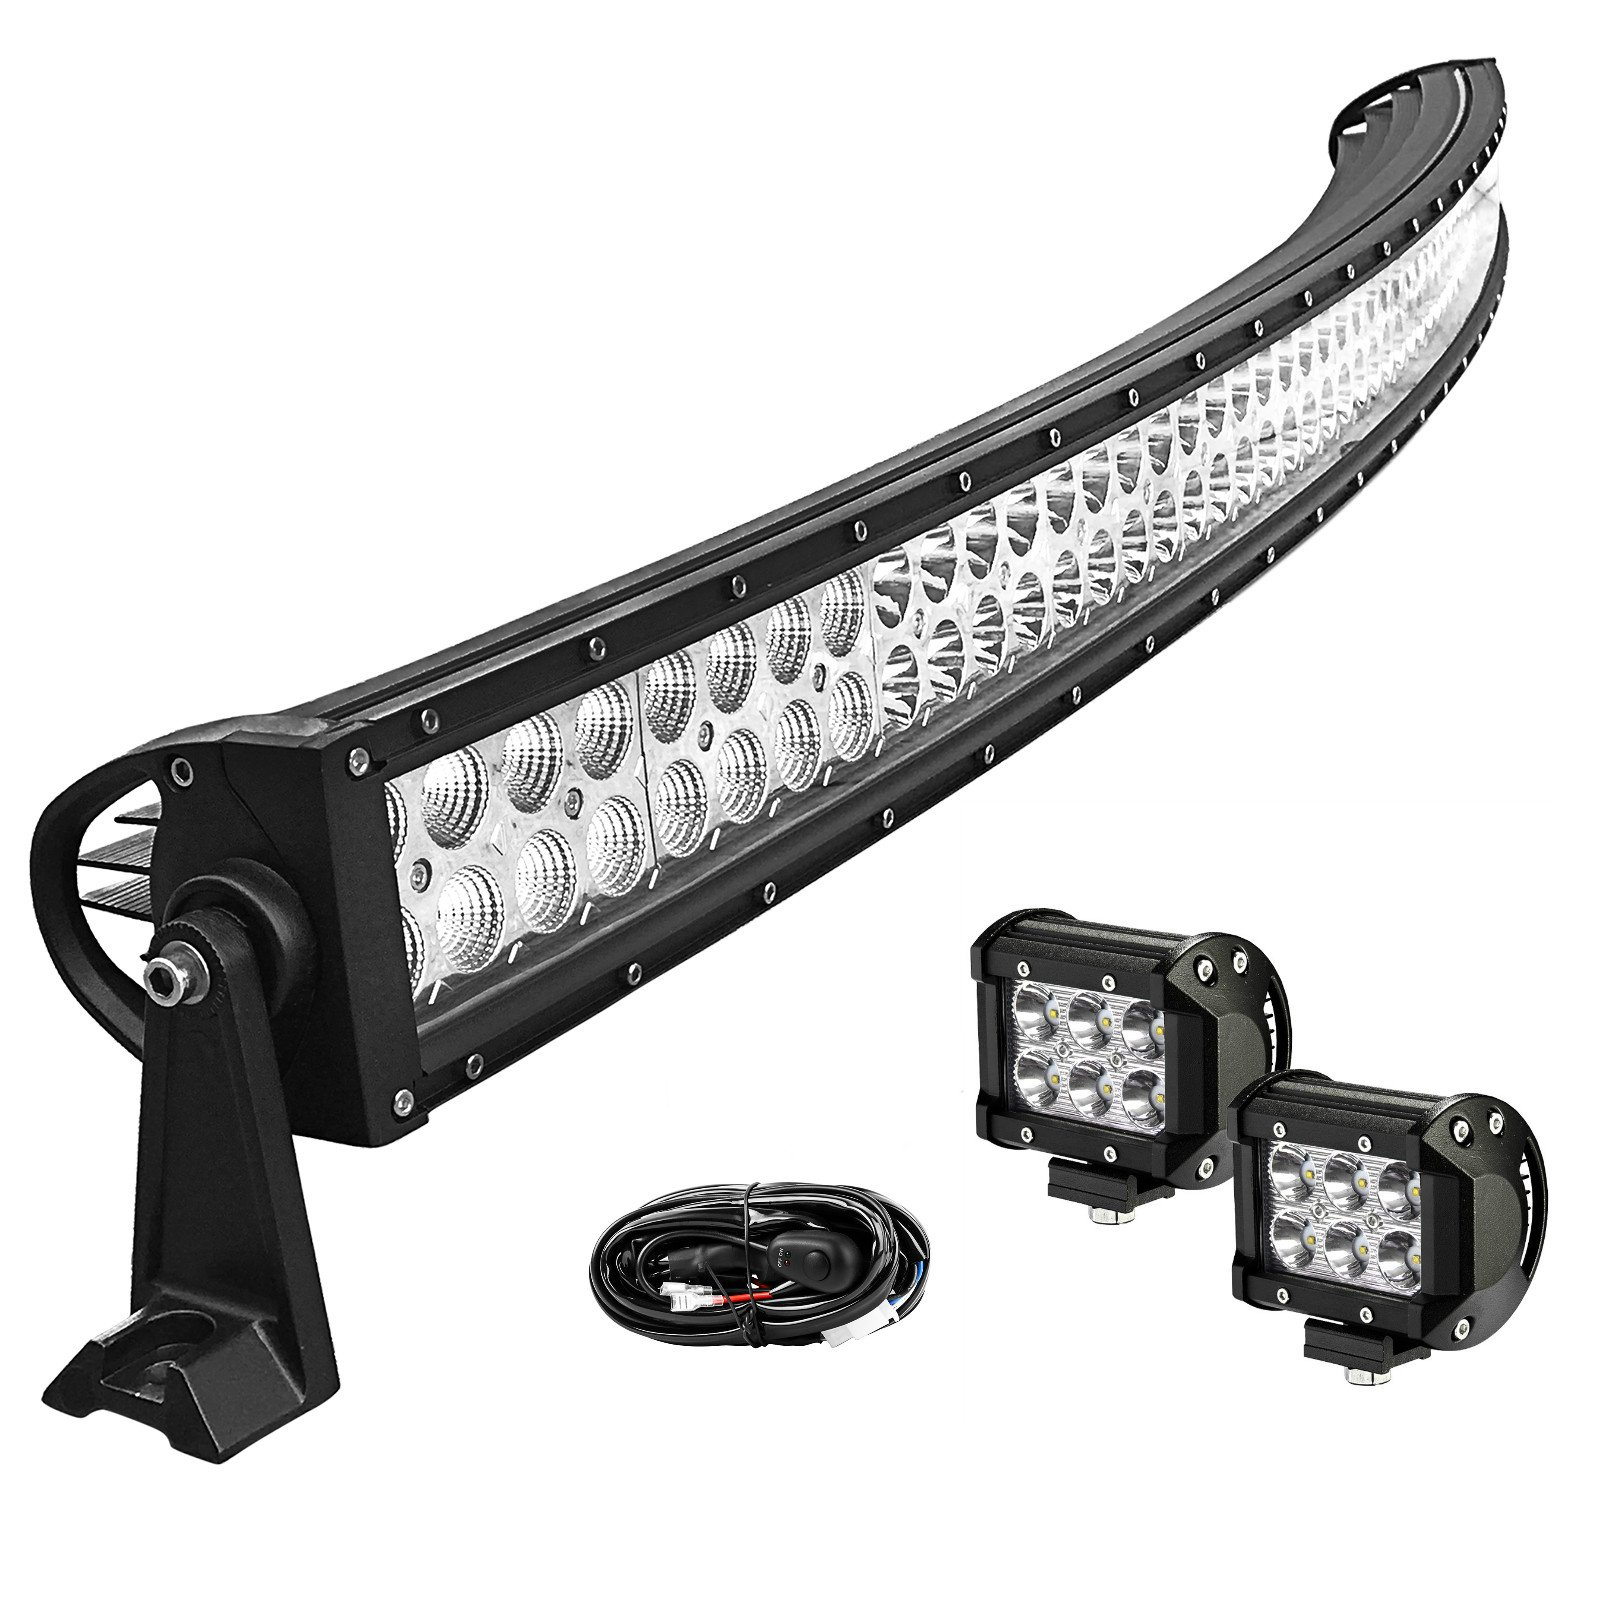 LED Light Bar YITAMOTOR Curved 52 Inch Light Bar Combo + 2 PCS 18W LED Flood Pod Lights with 12V Switch on/off Wiring Harness for ATV Boat Jeep Car Truck SUV 4x4 4WD, IP67 Waterproof 3 Years Warranty